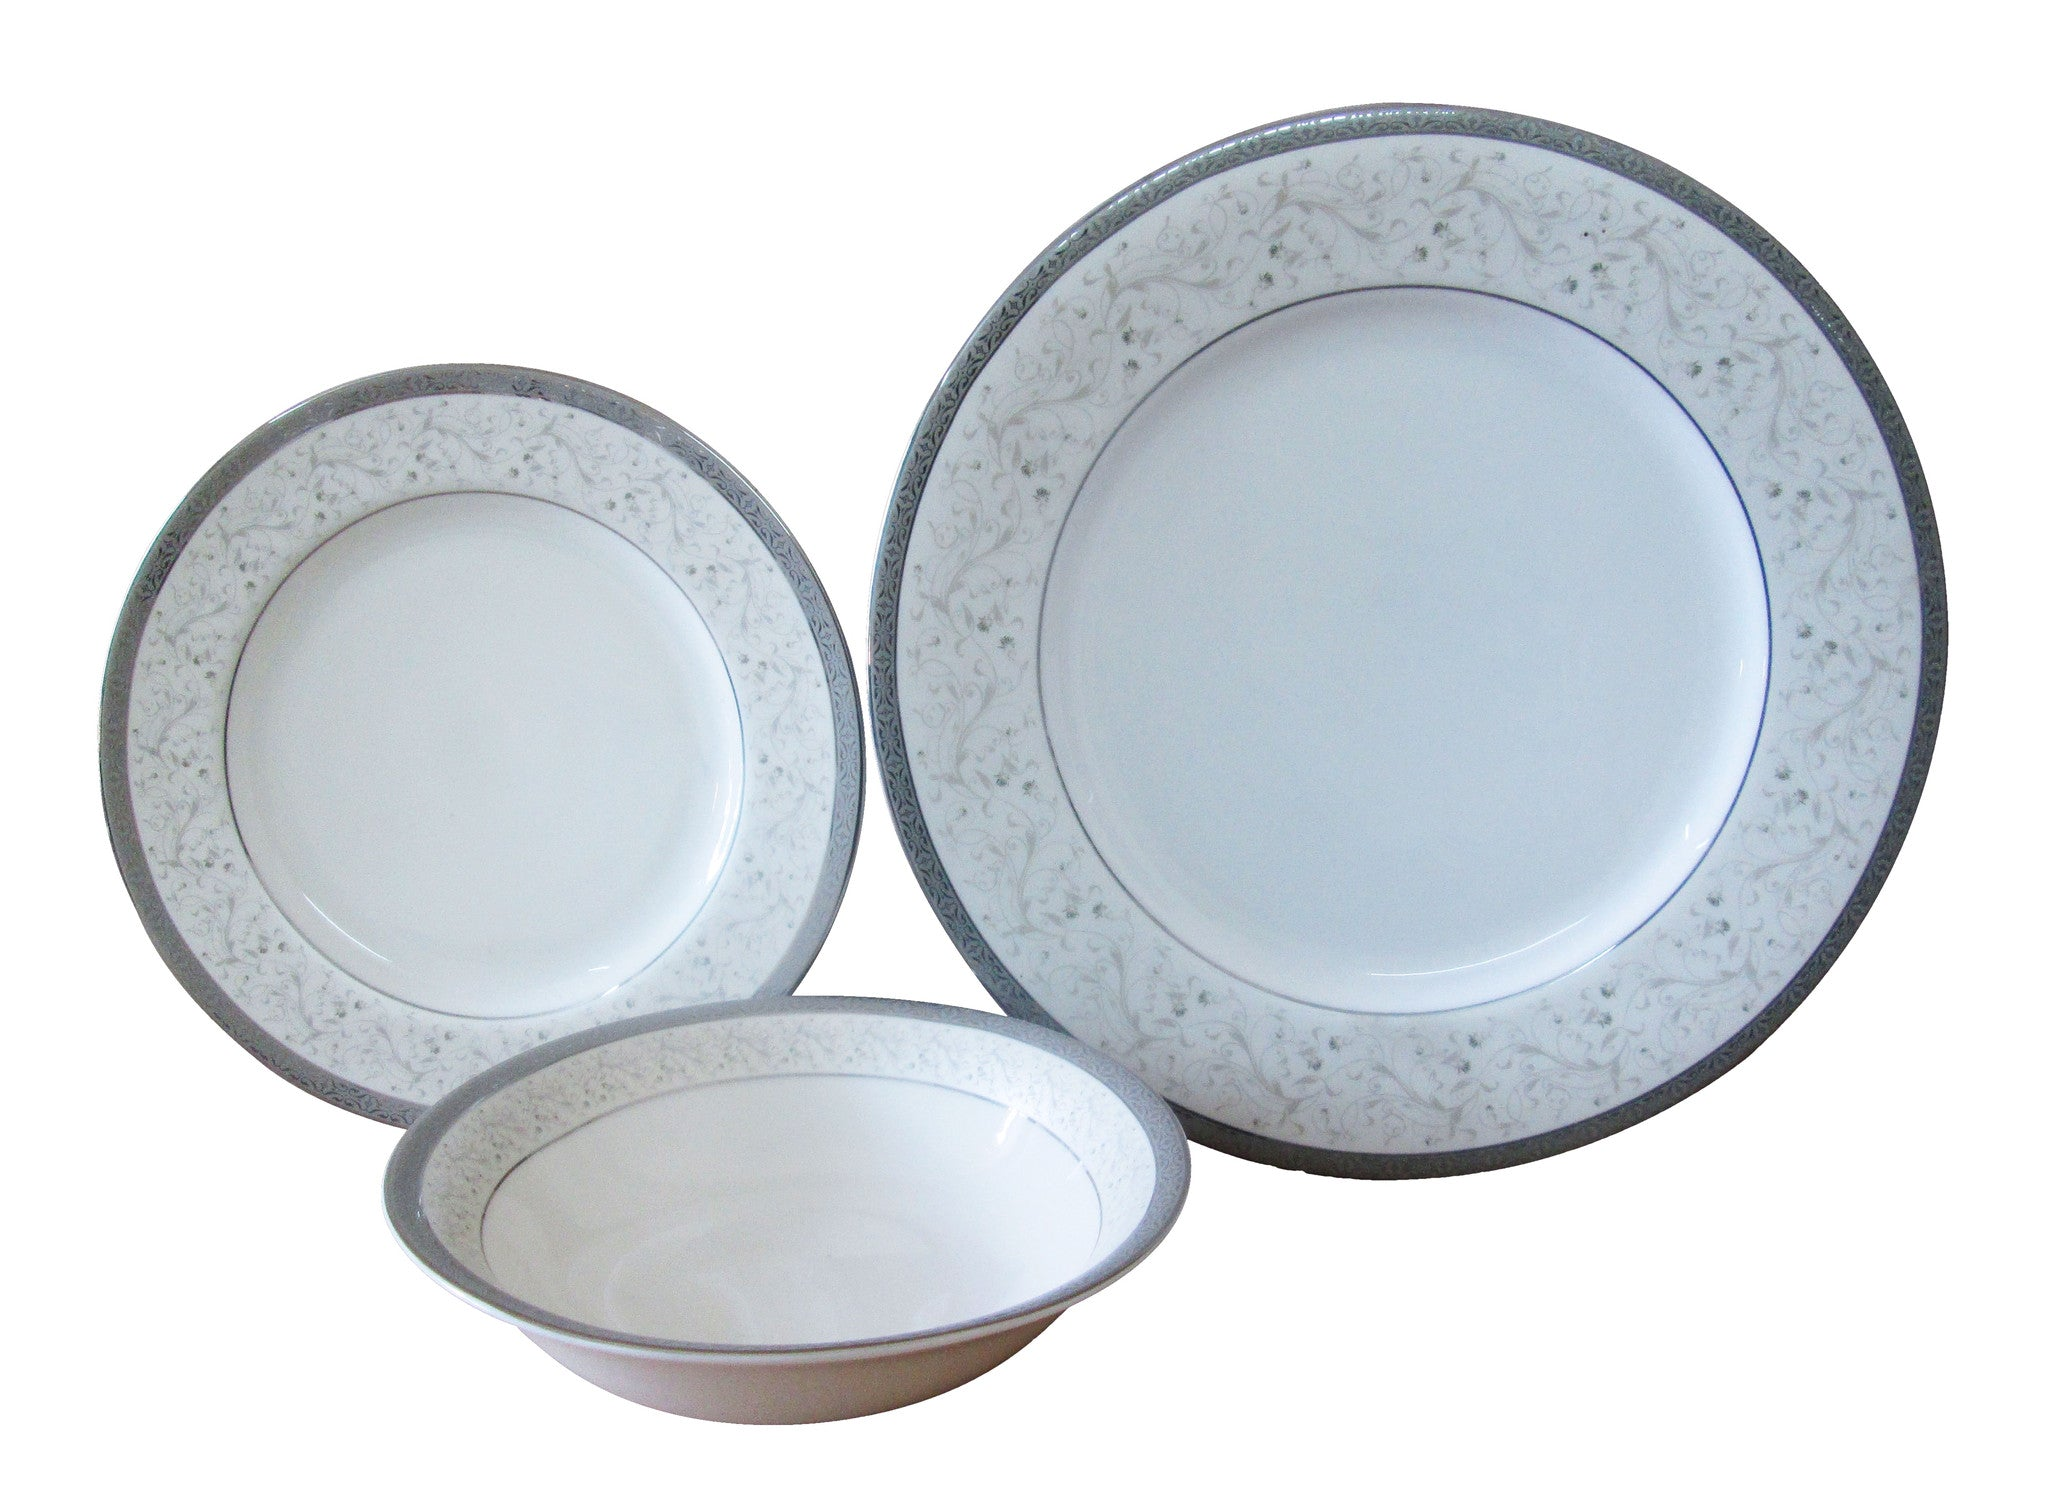 dinner plates for sale uk contemporary dinner plates  the plate  - the plate co signature grey premium dinner set